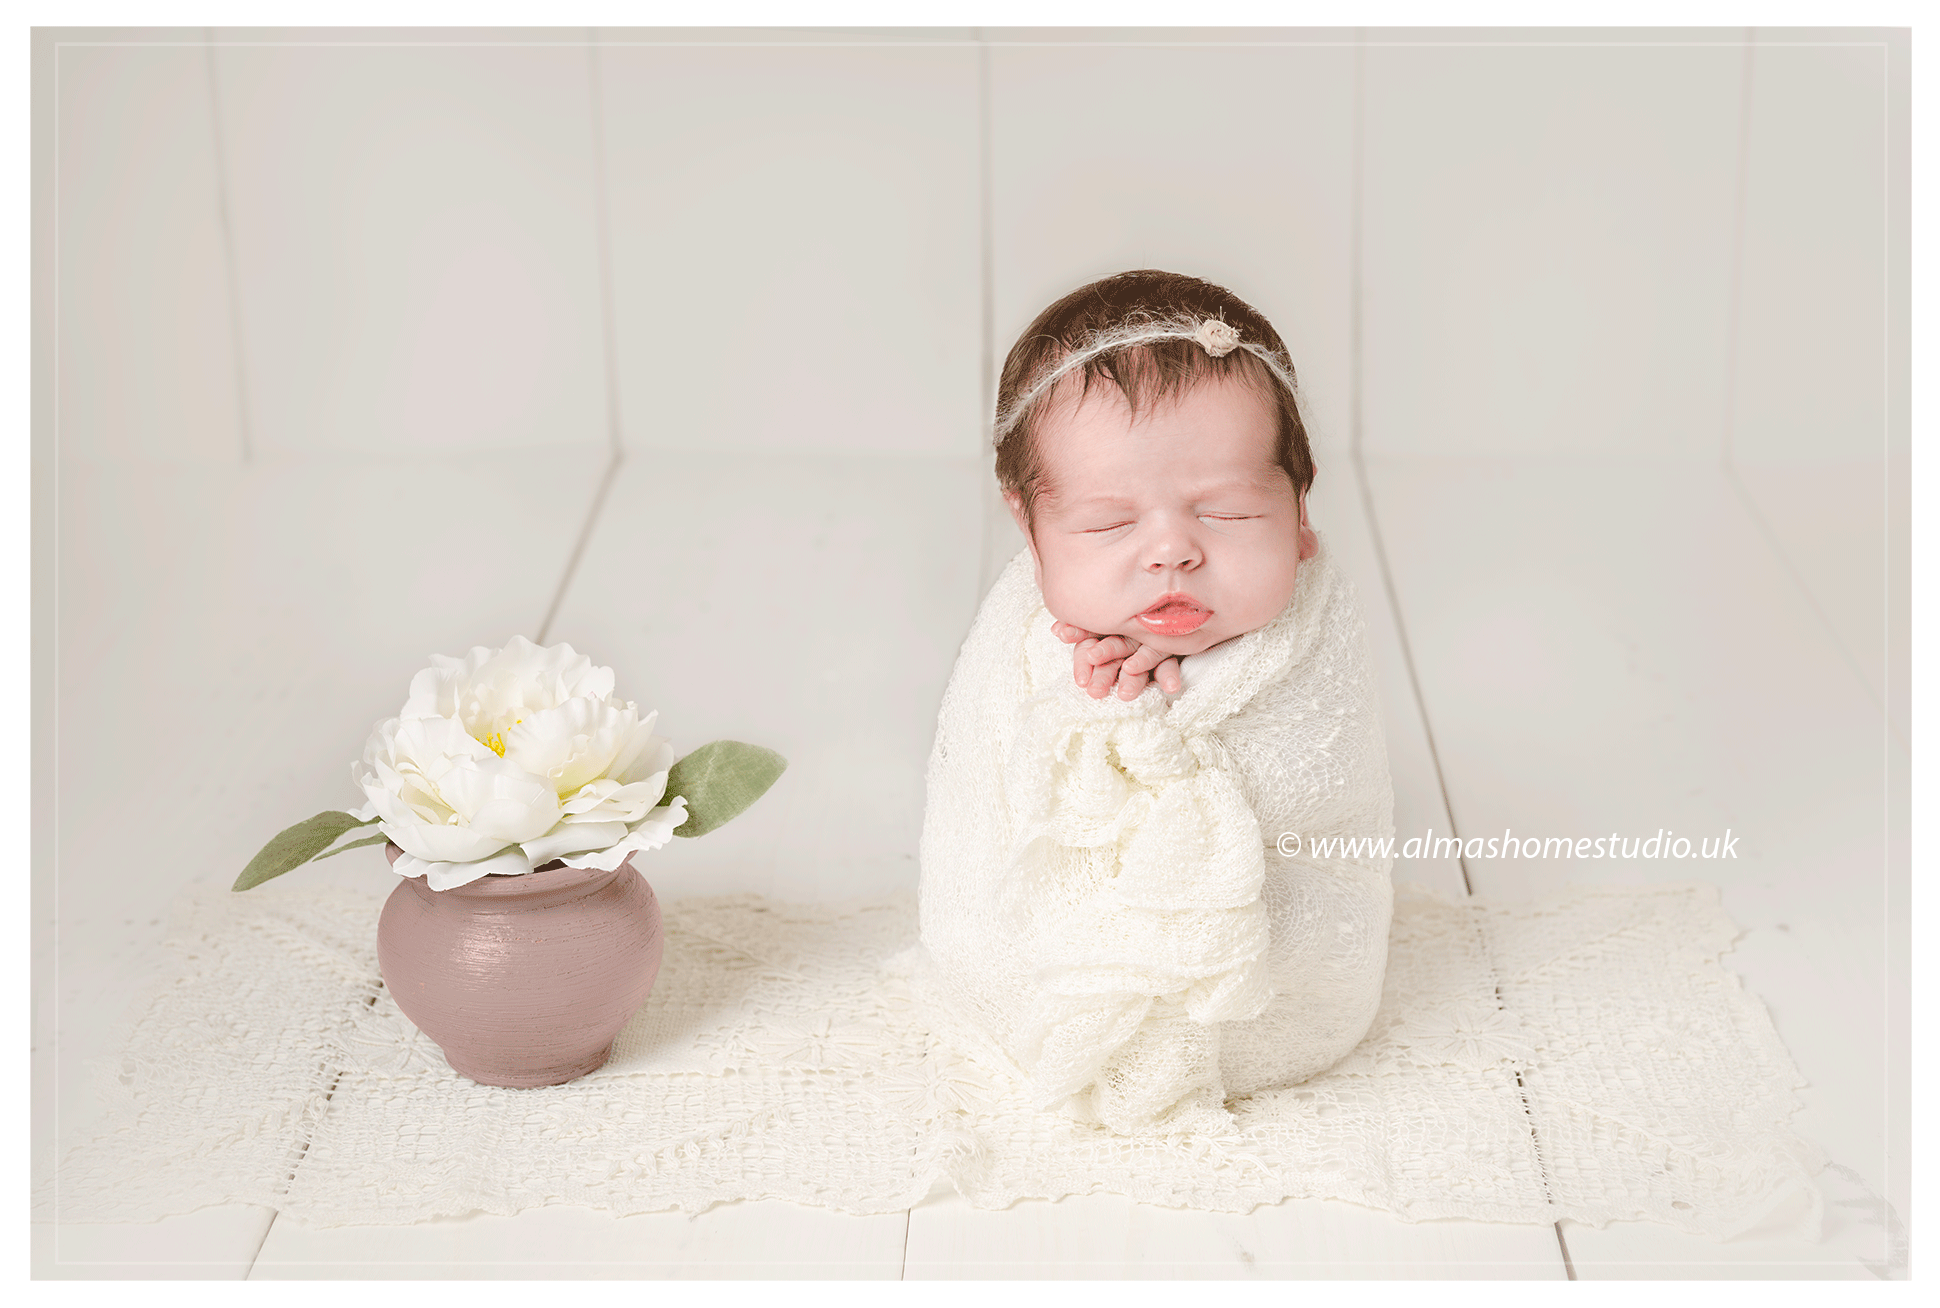 Newborn photographer based in Blandford Forum, Dorset